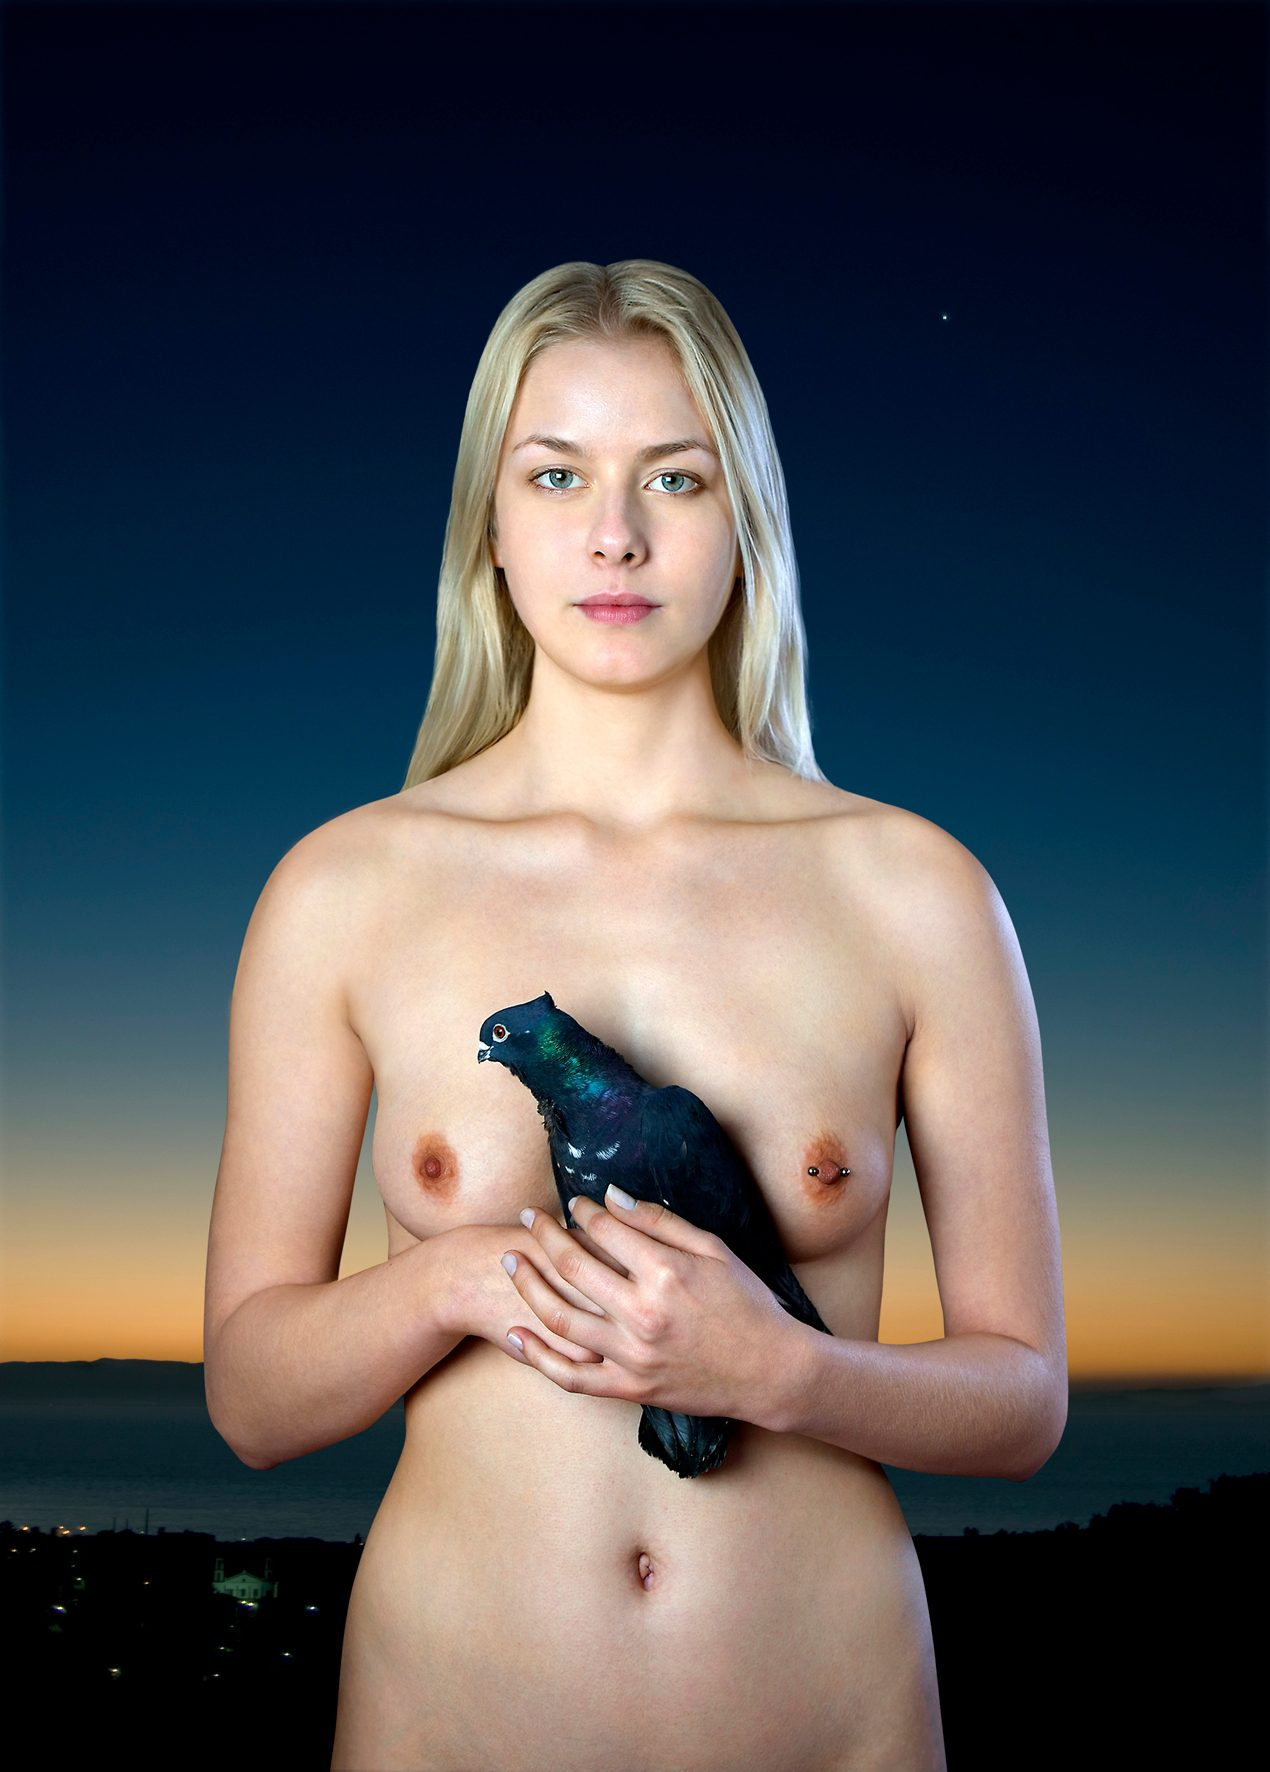 Untitled, For a Definition of The Nude Series (Woman w/ Bird)